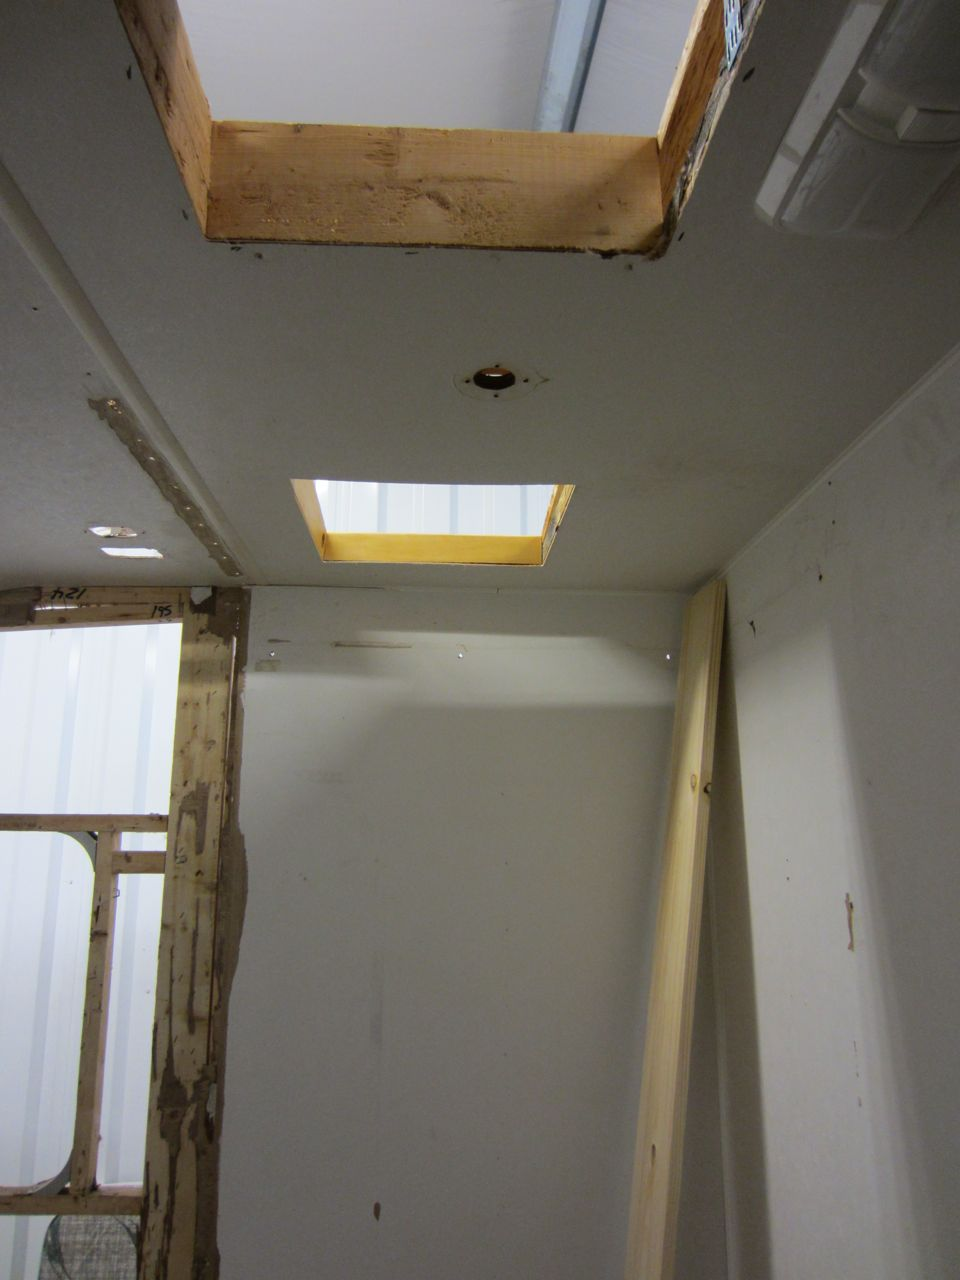 New hole above the shower for the vent.